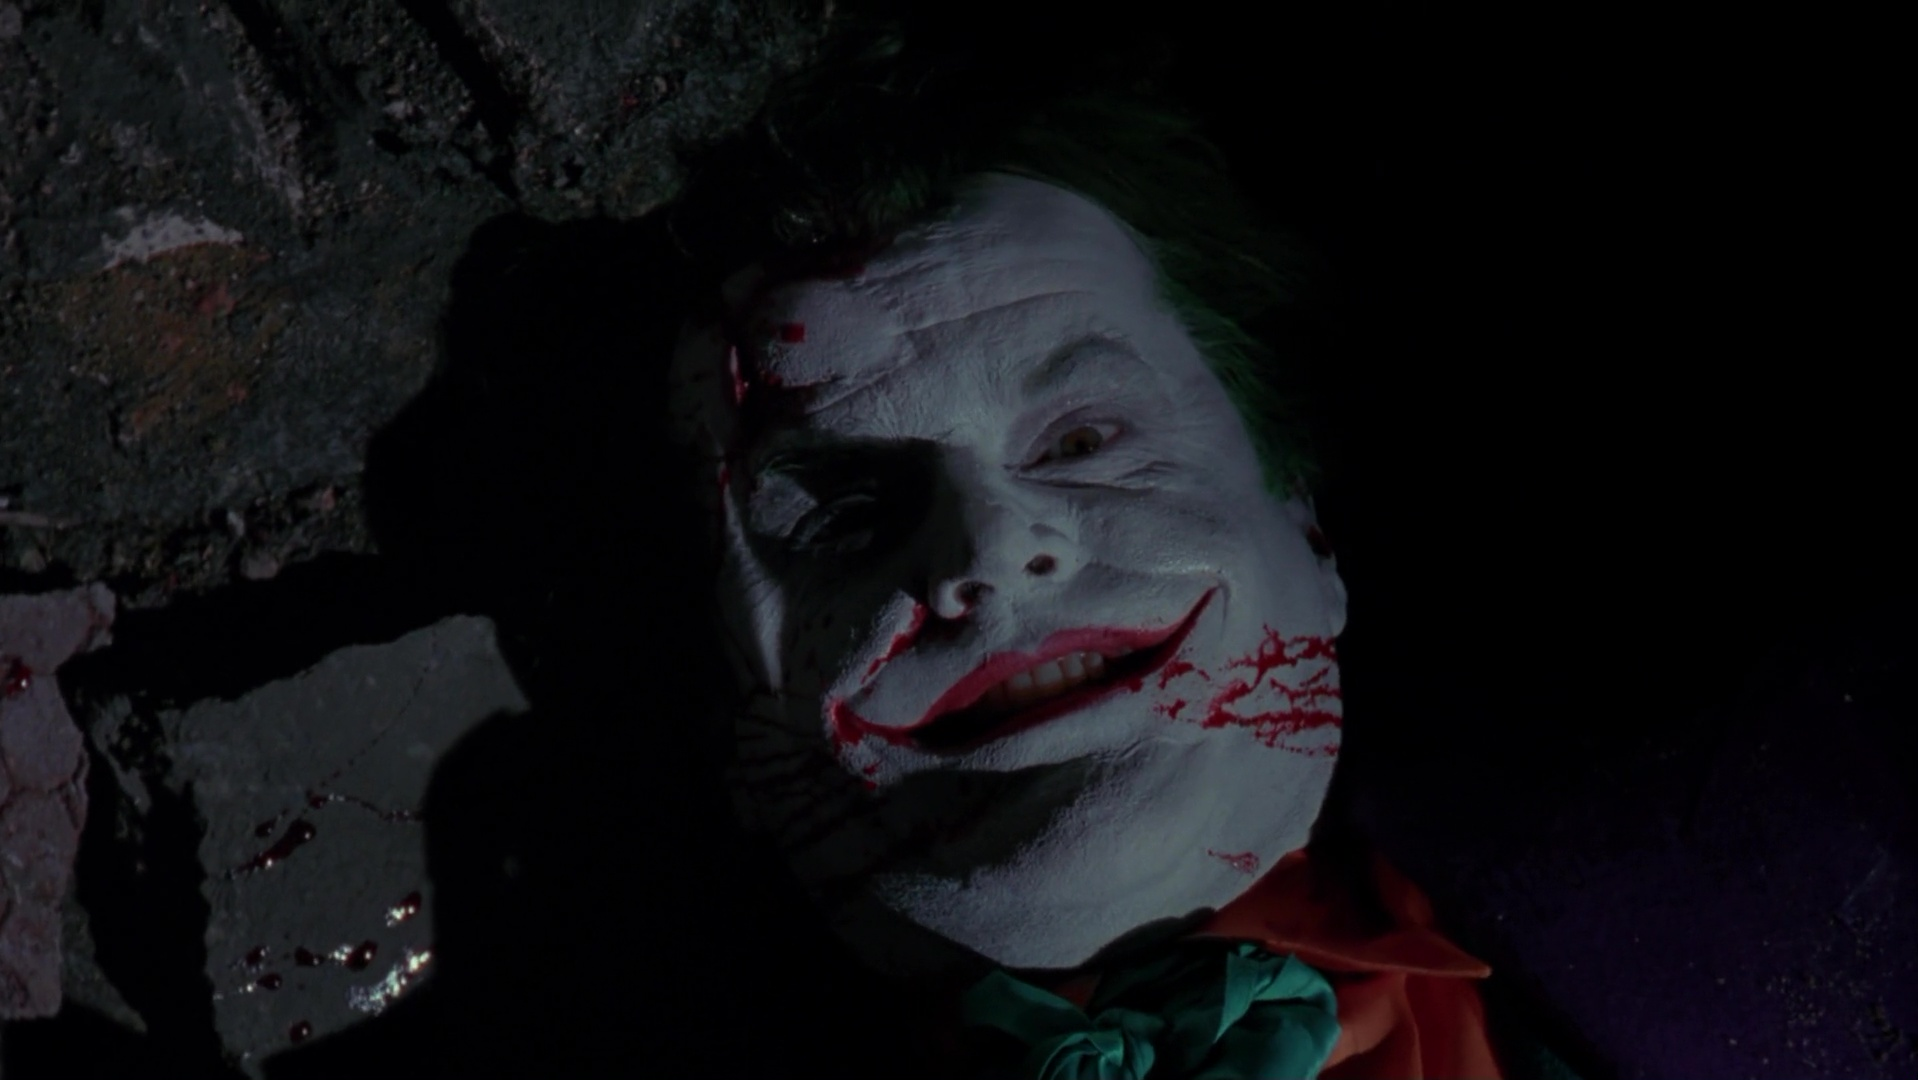 File:Jackjokerdeath.jpg